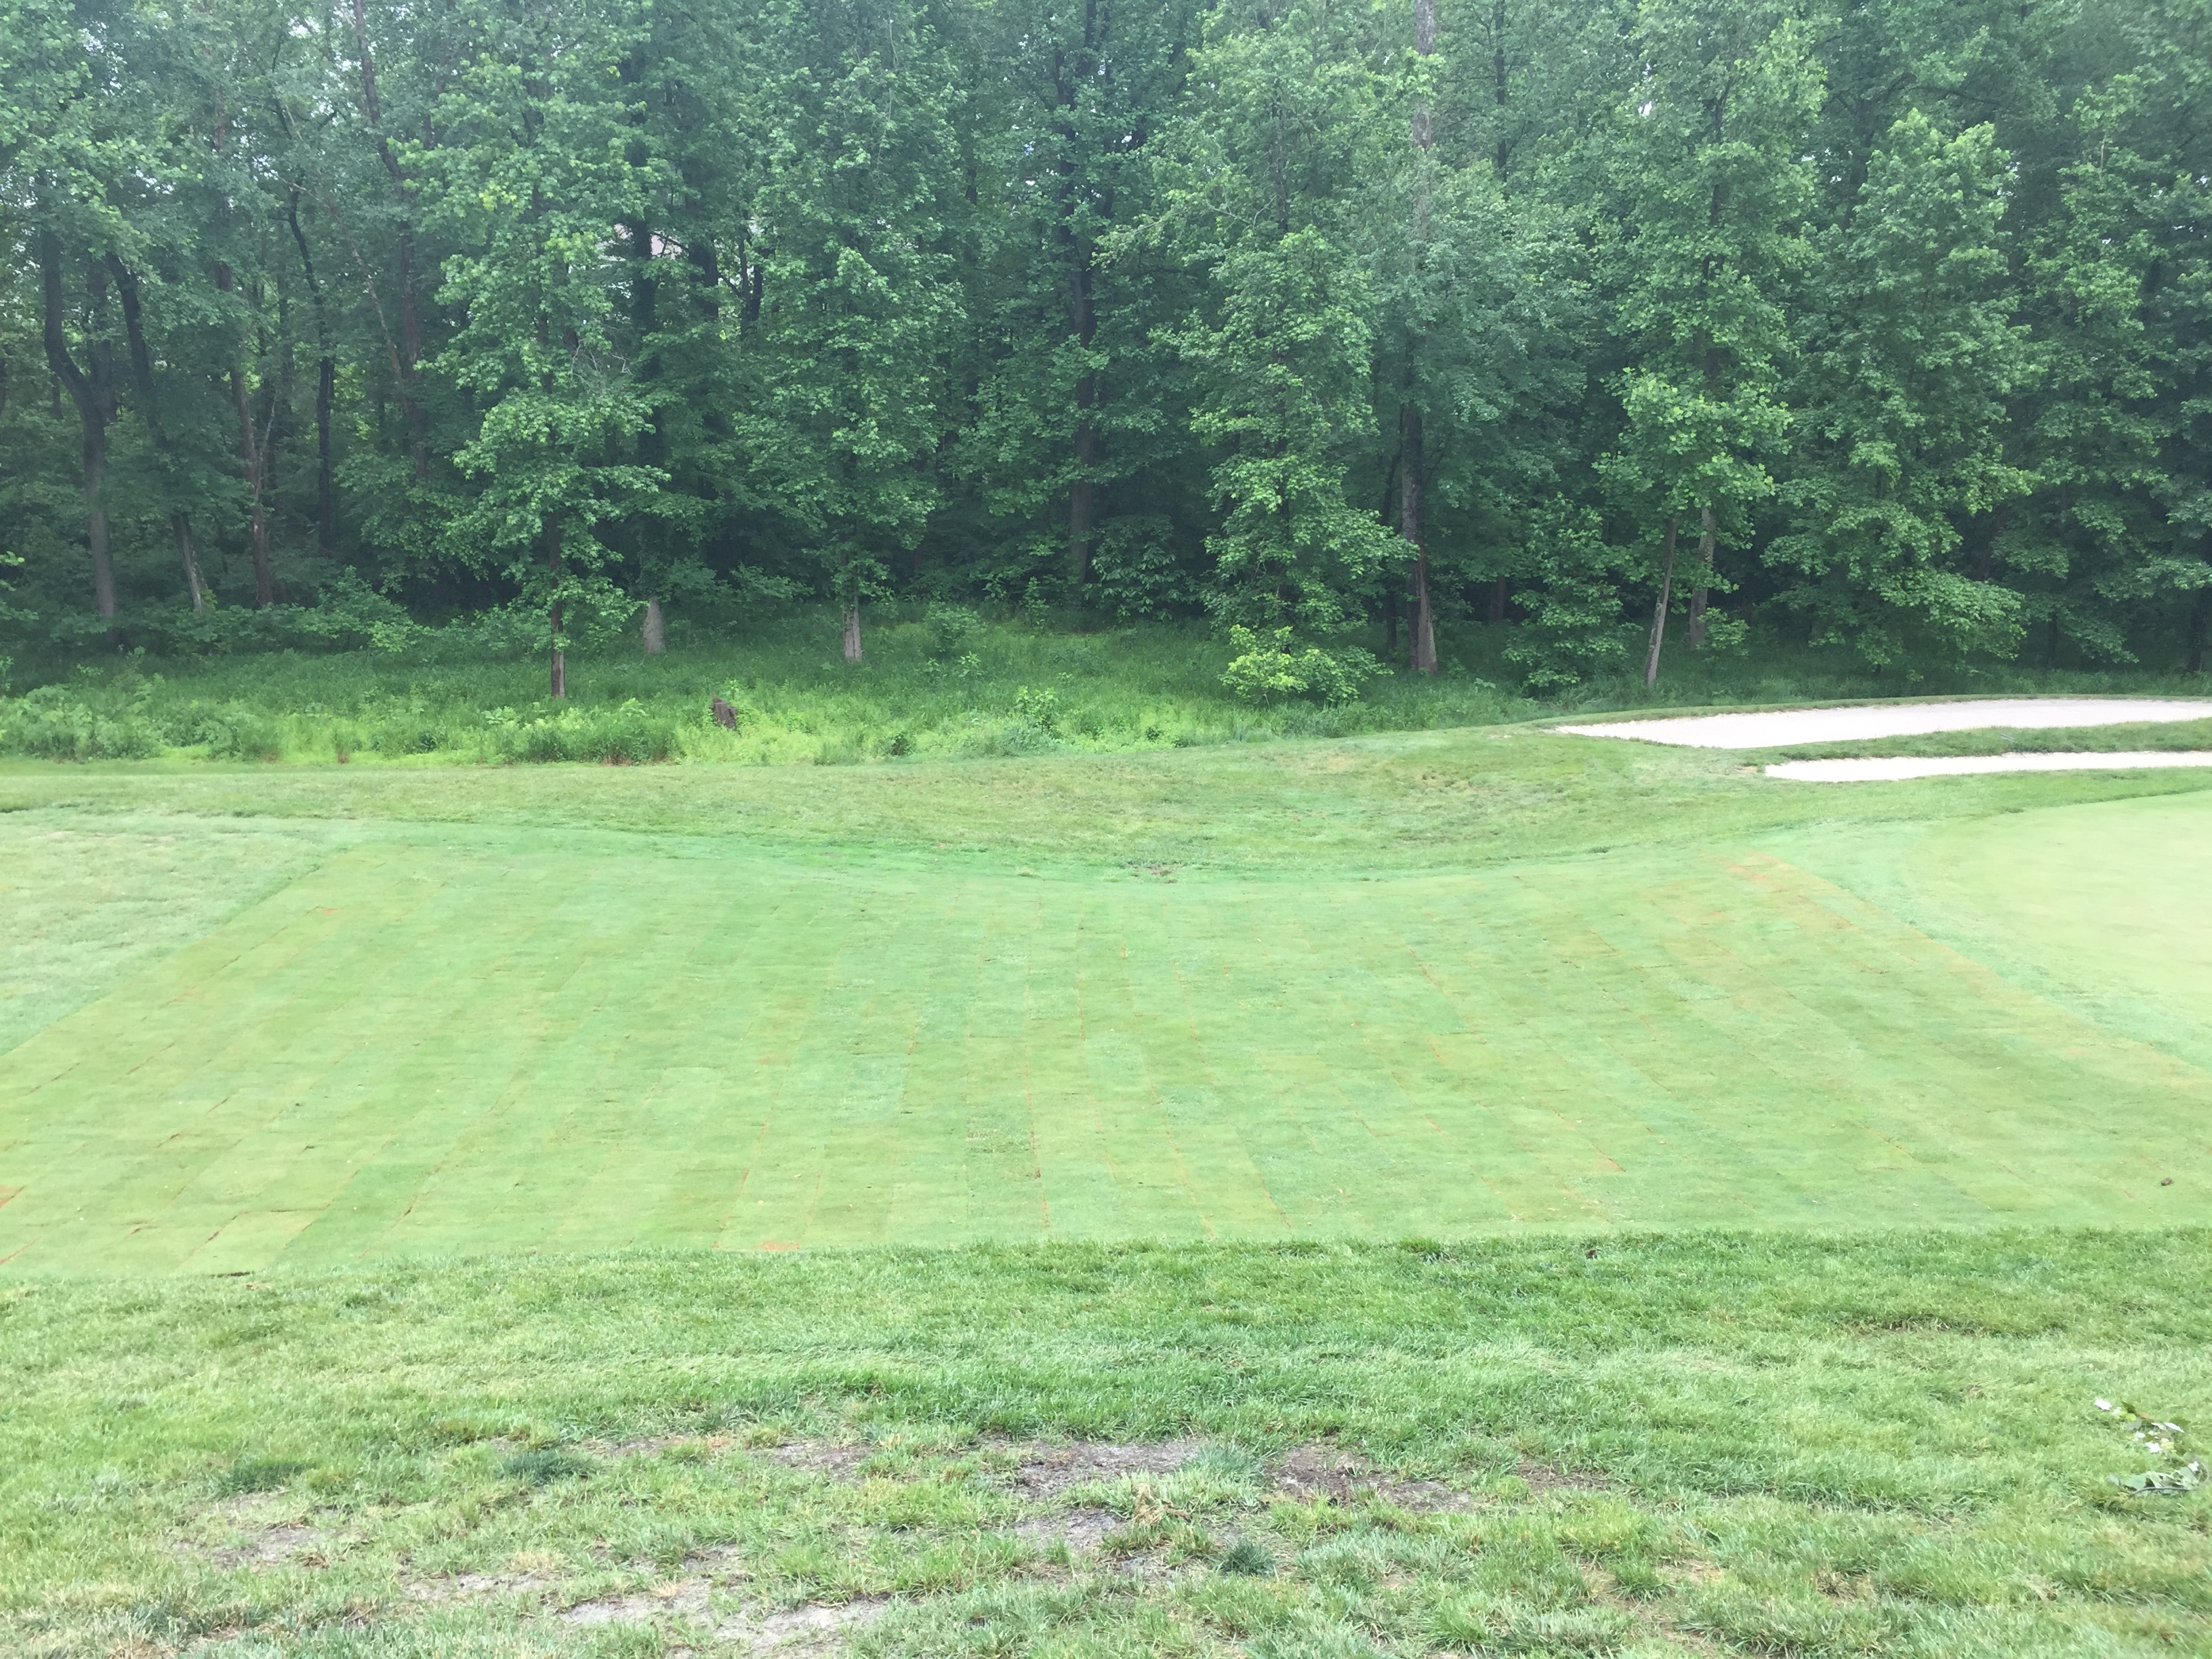 The grass growing in on the 5th fairway at Lake Presidential Golf Club in Upper Marlboro, MD